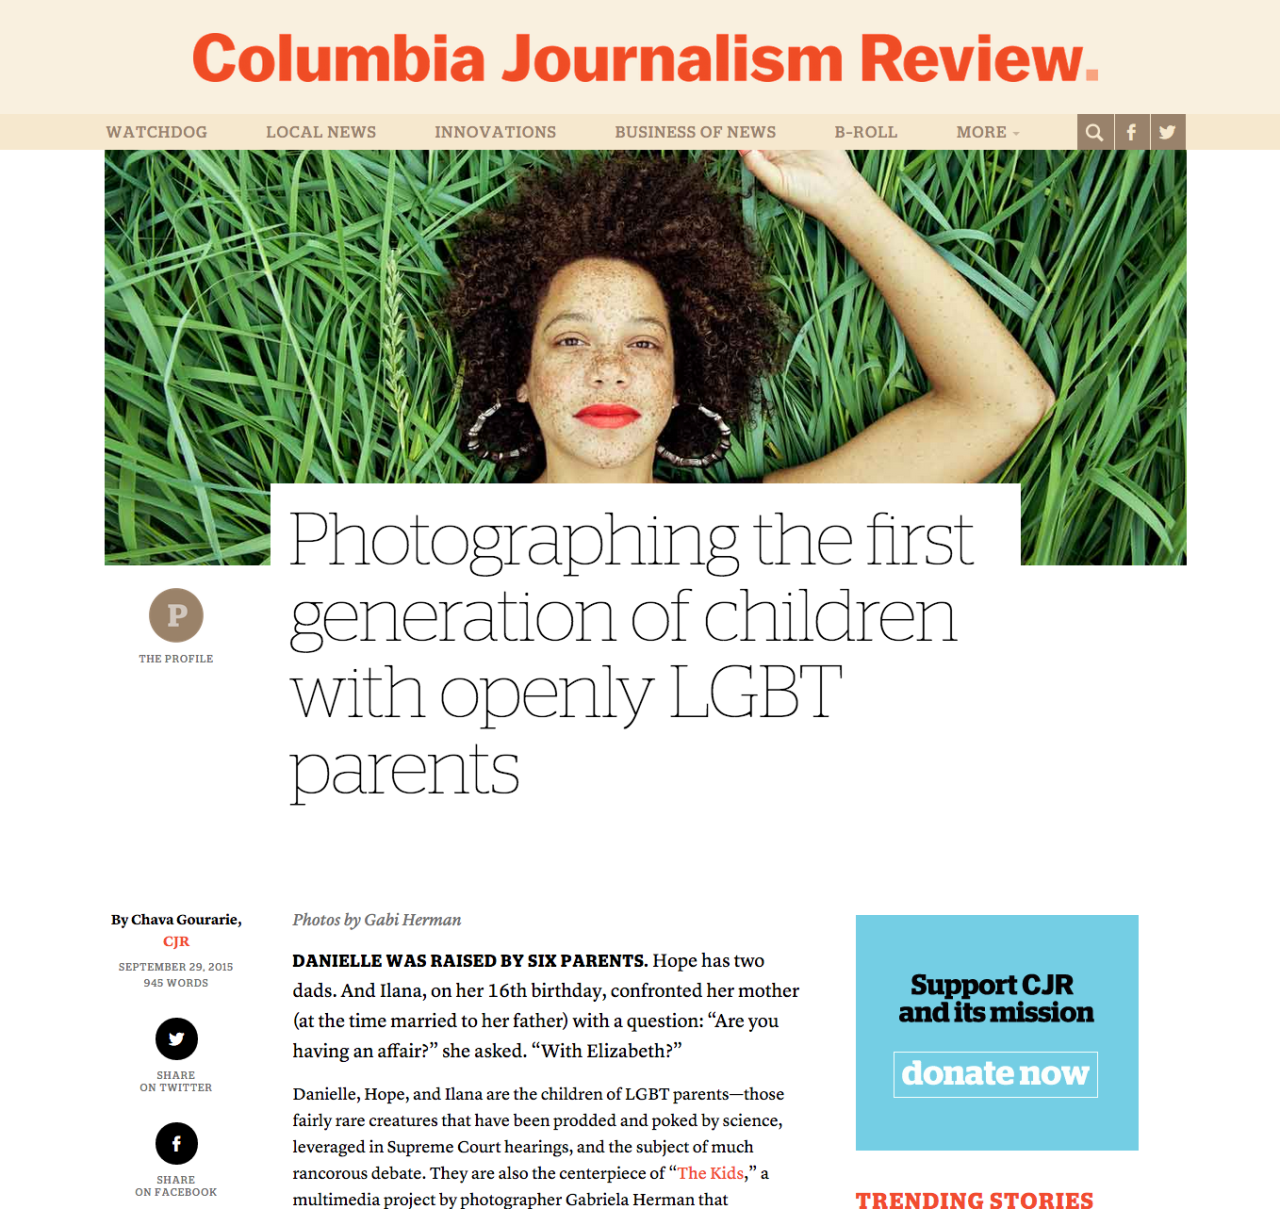 The Kids project discussed in the  Columbia Journalism Review